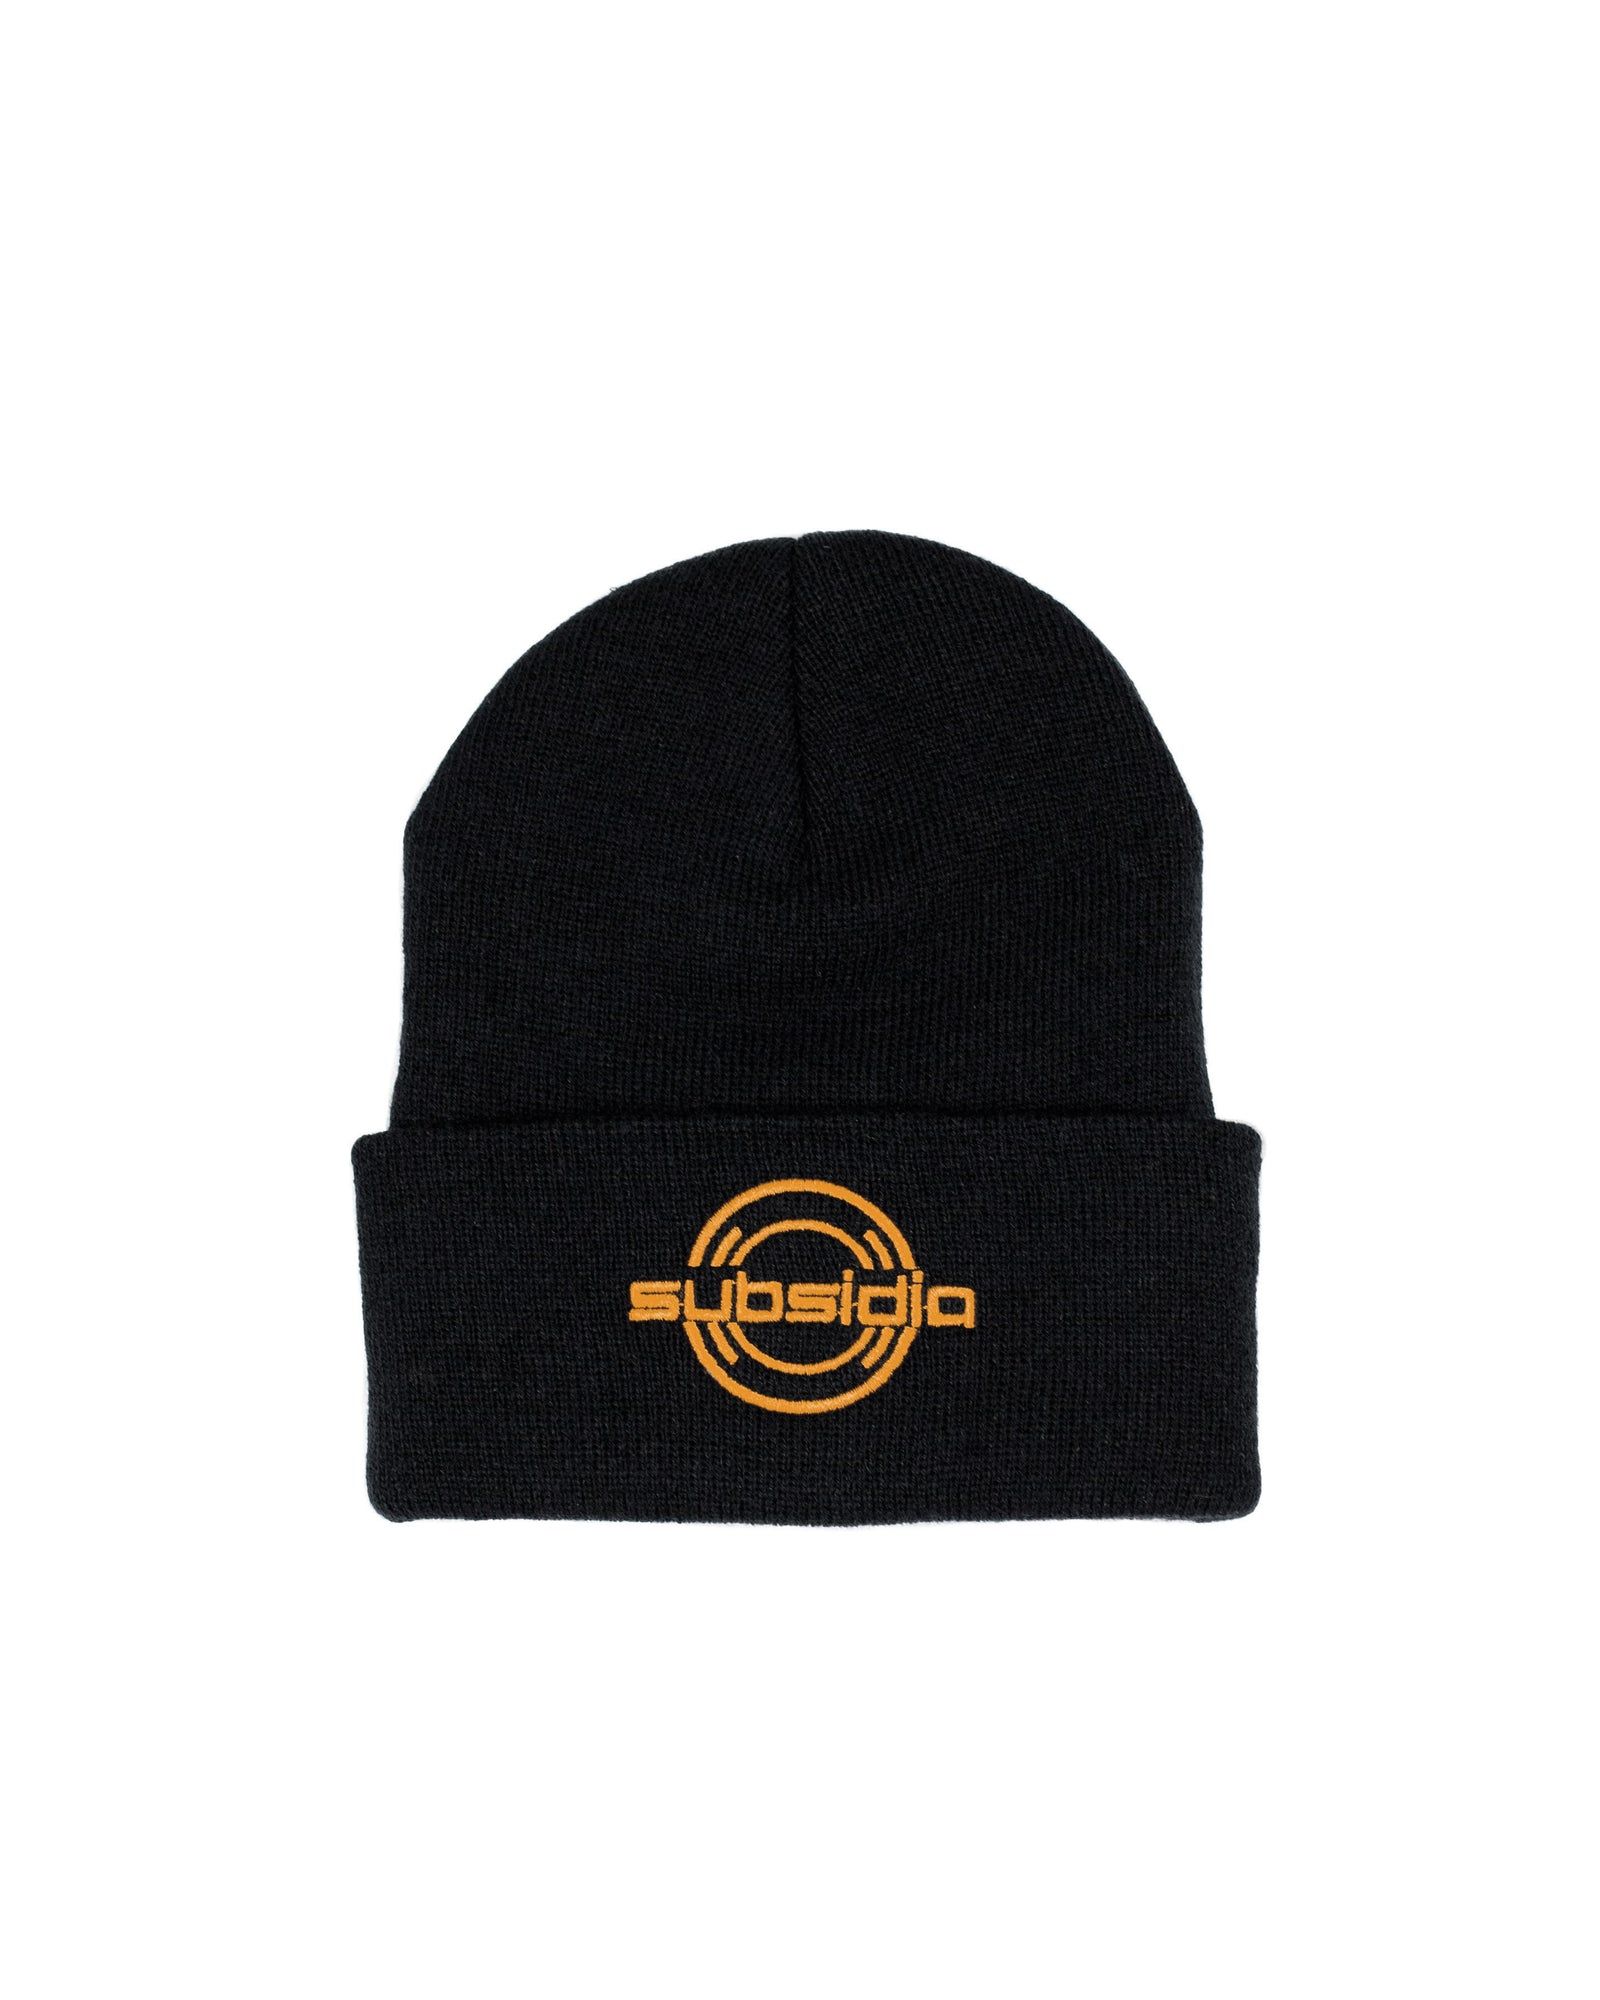 'Subsidia' Beanie - Black/Orange